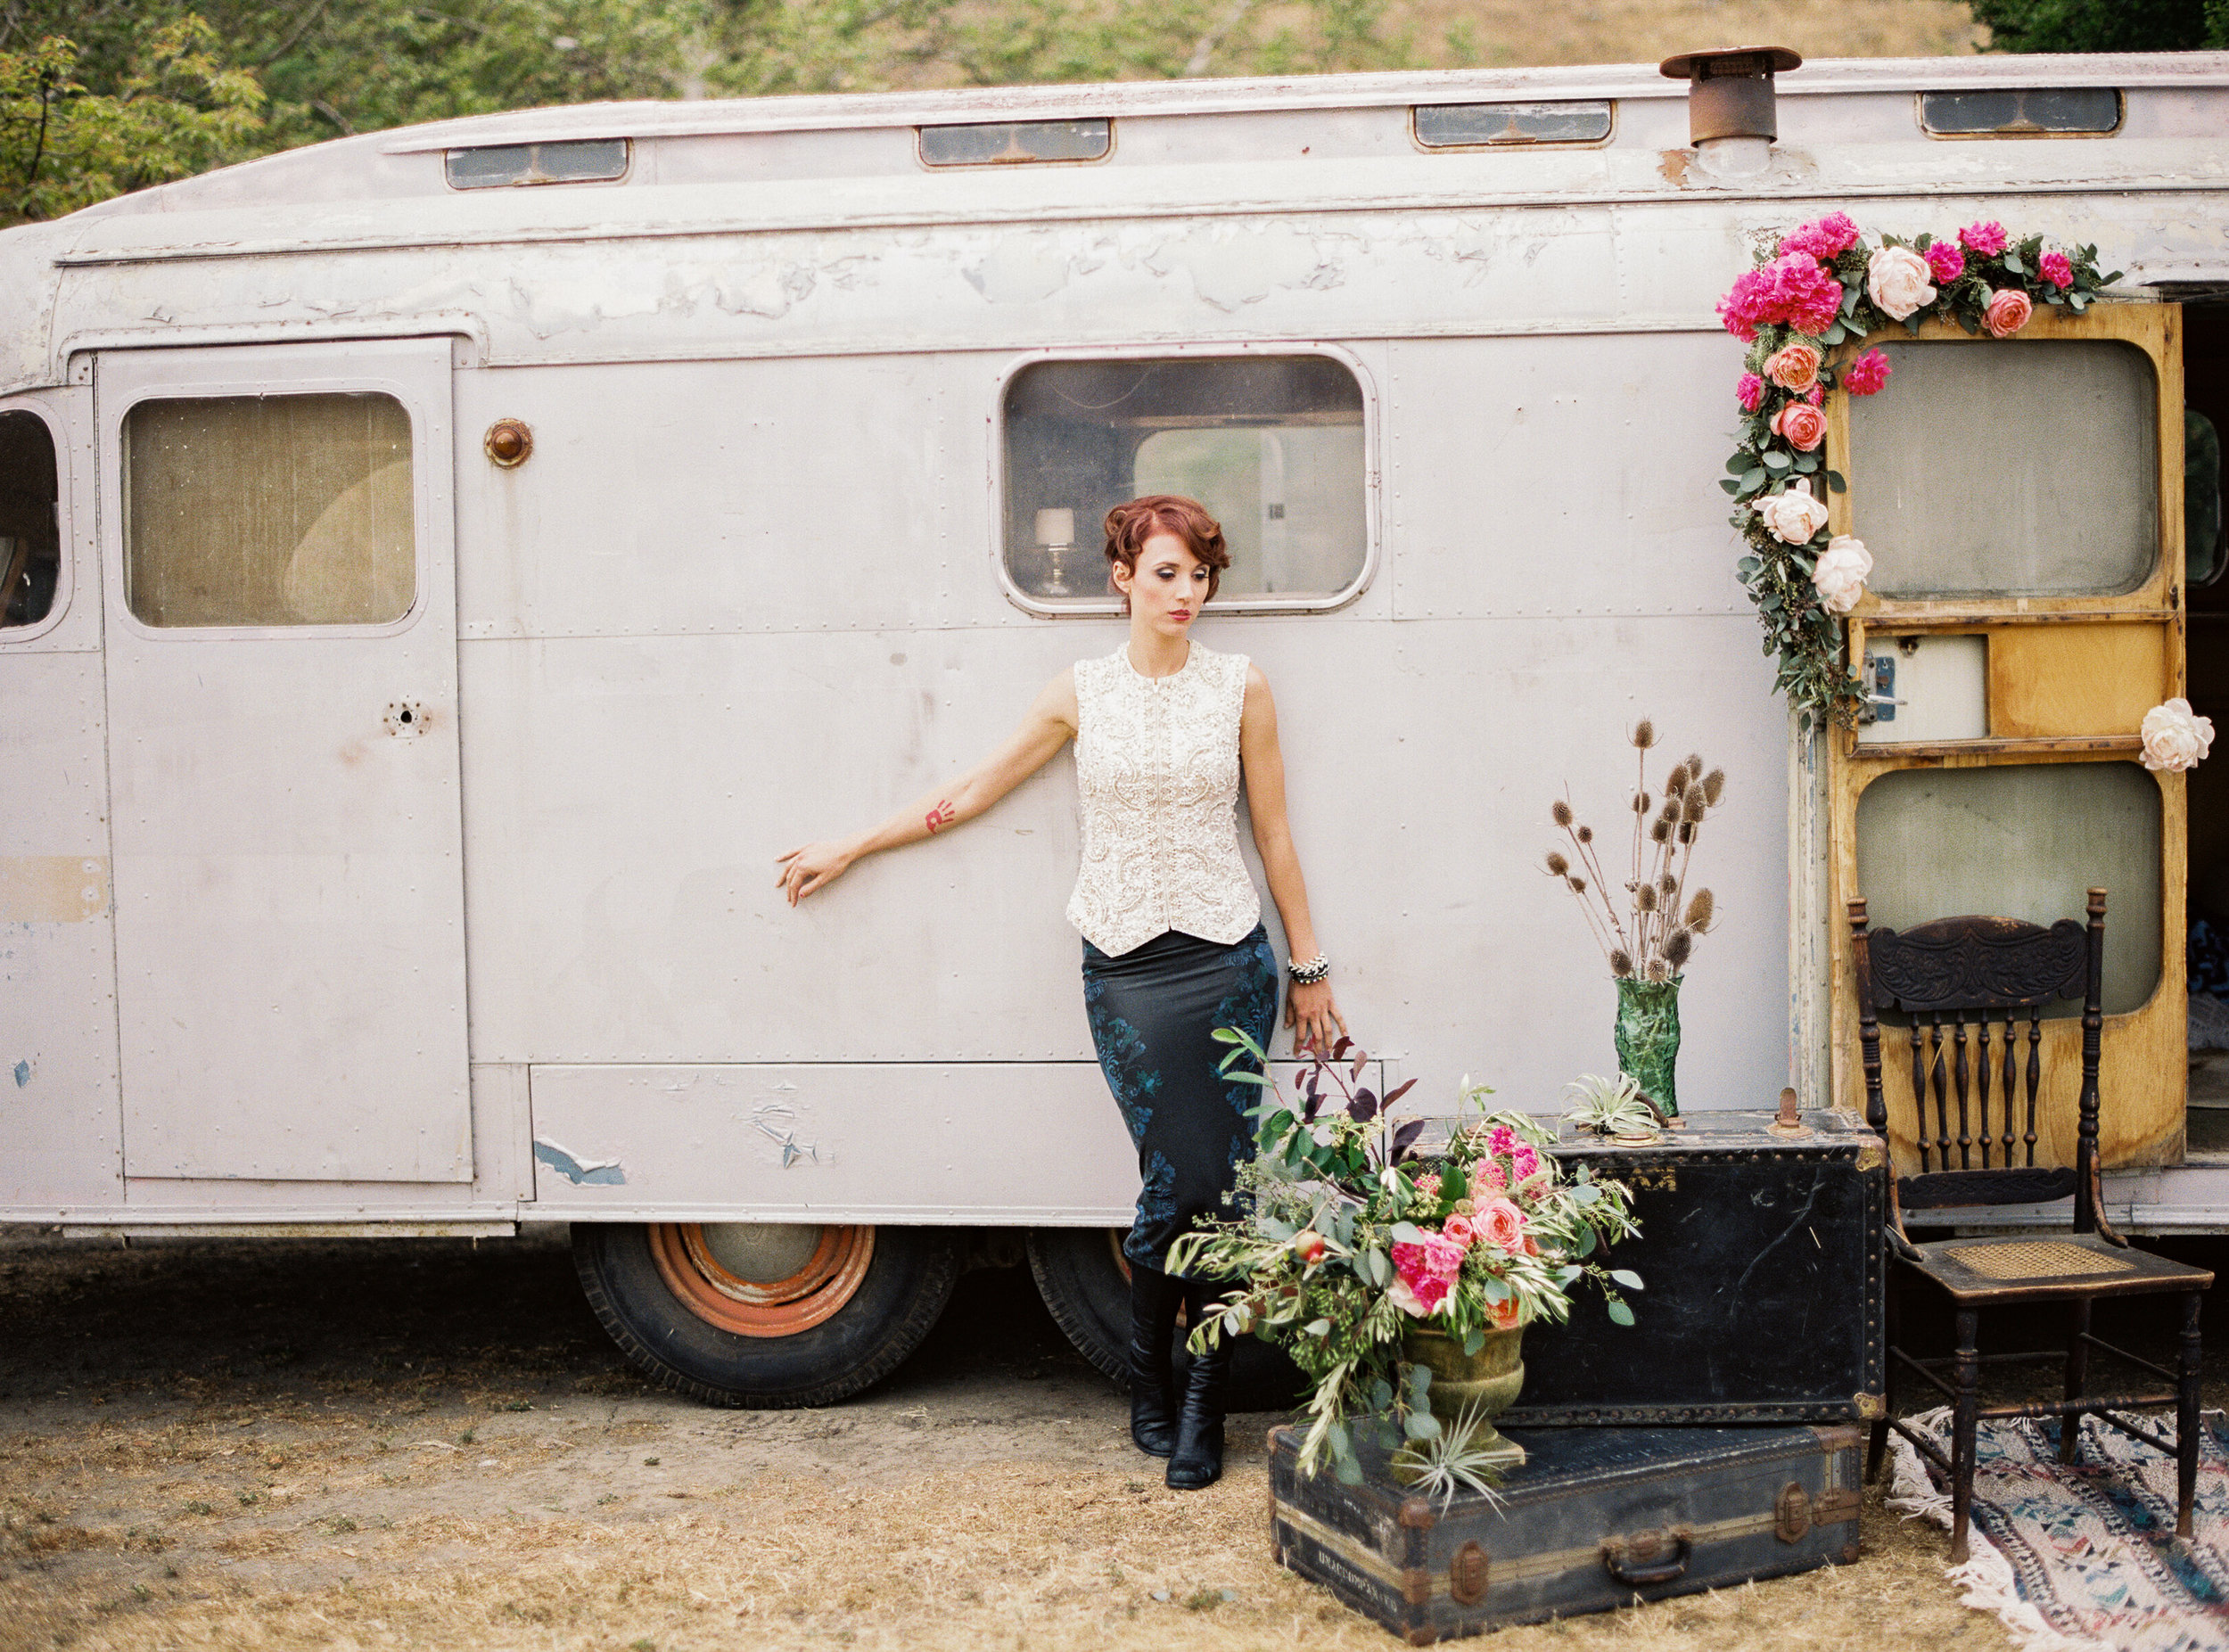 1940'S LONG SILVER, BEAT UP LOOKING VINTAGE TRAILER AVAILABLE FOR MOVIE AND PRODUCTION RENTALS, FOR BACKSTAGE LOUNGES, FILMING, TV & MOVIES, FOR HAIR AND MAKEUP, COMMERCIAL AND CATALOGUE PHOTO SHOOTS & MORE